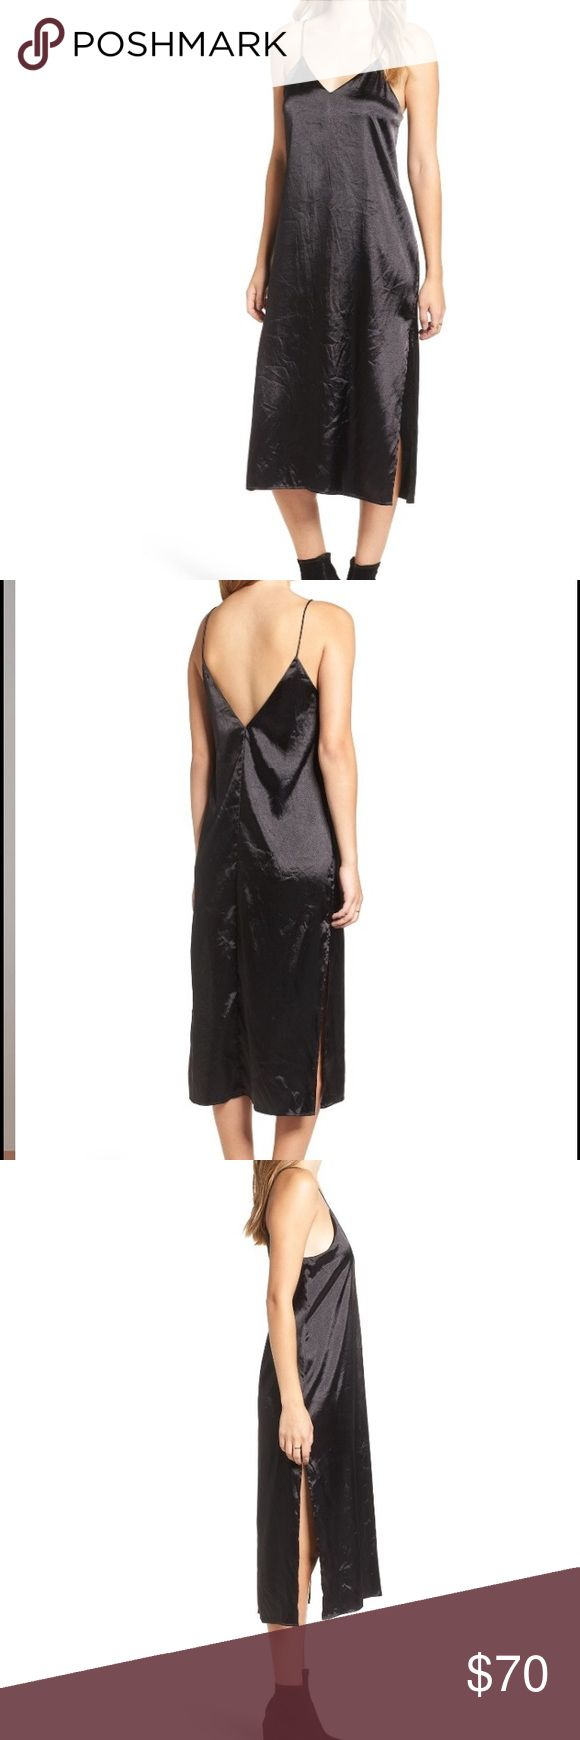 Finders Keepers the Label Midi Slipdress Finders Keepers the Label Midi Slipdress. Channel your inner '90s cool girl in a lightweight crinkled-satin slipdress with a daring split hem. Finders Keepers Dresses